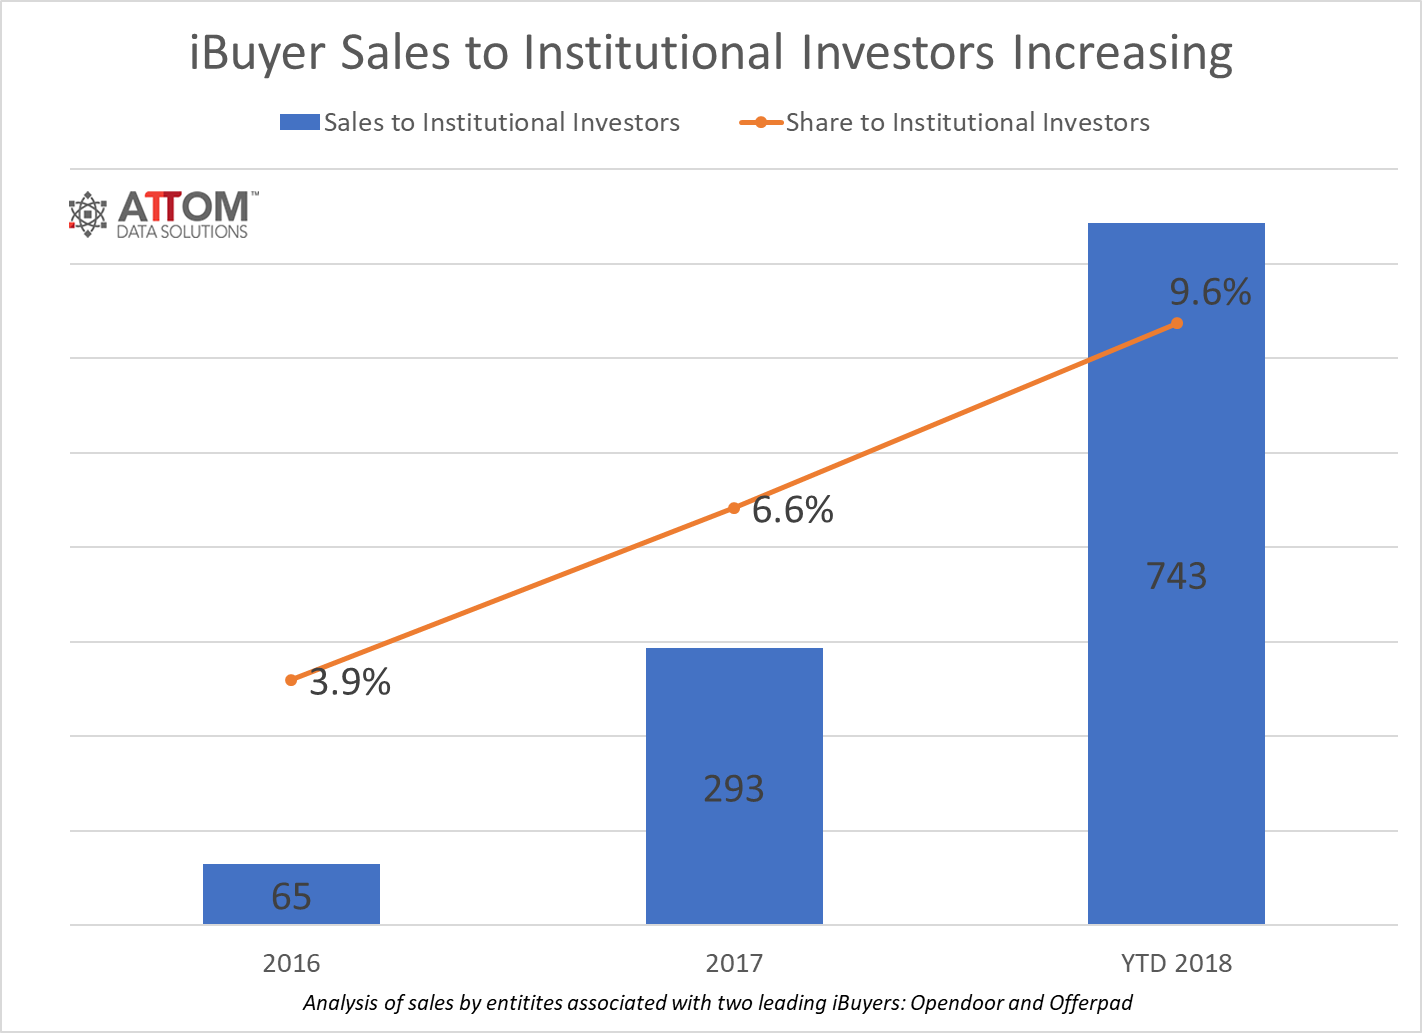 attom iBuyer Institutional Investor Purchases 1